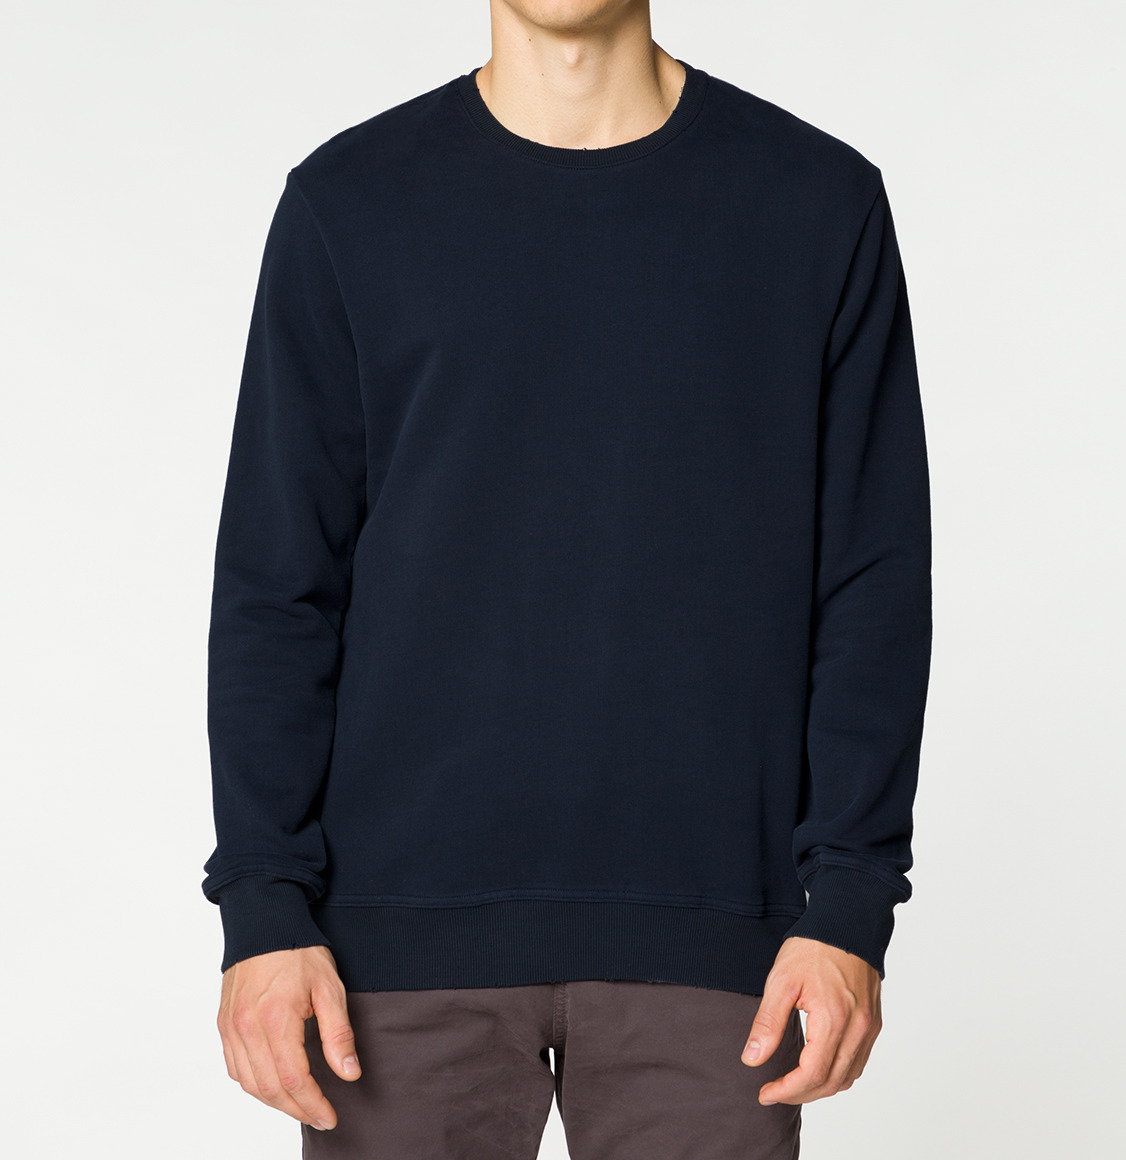 Distressed Crew-Neck Sweatshirt Navy Blue